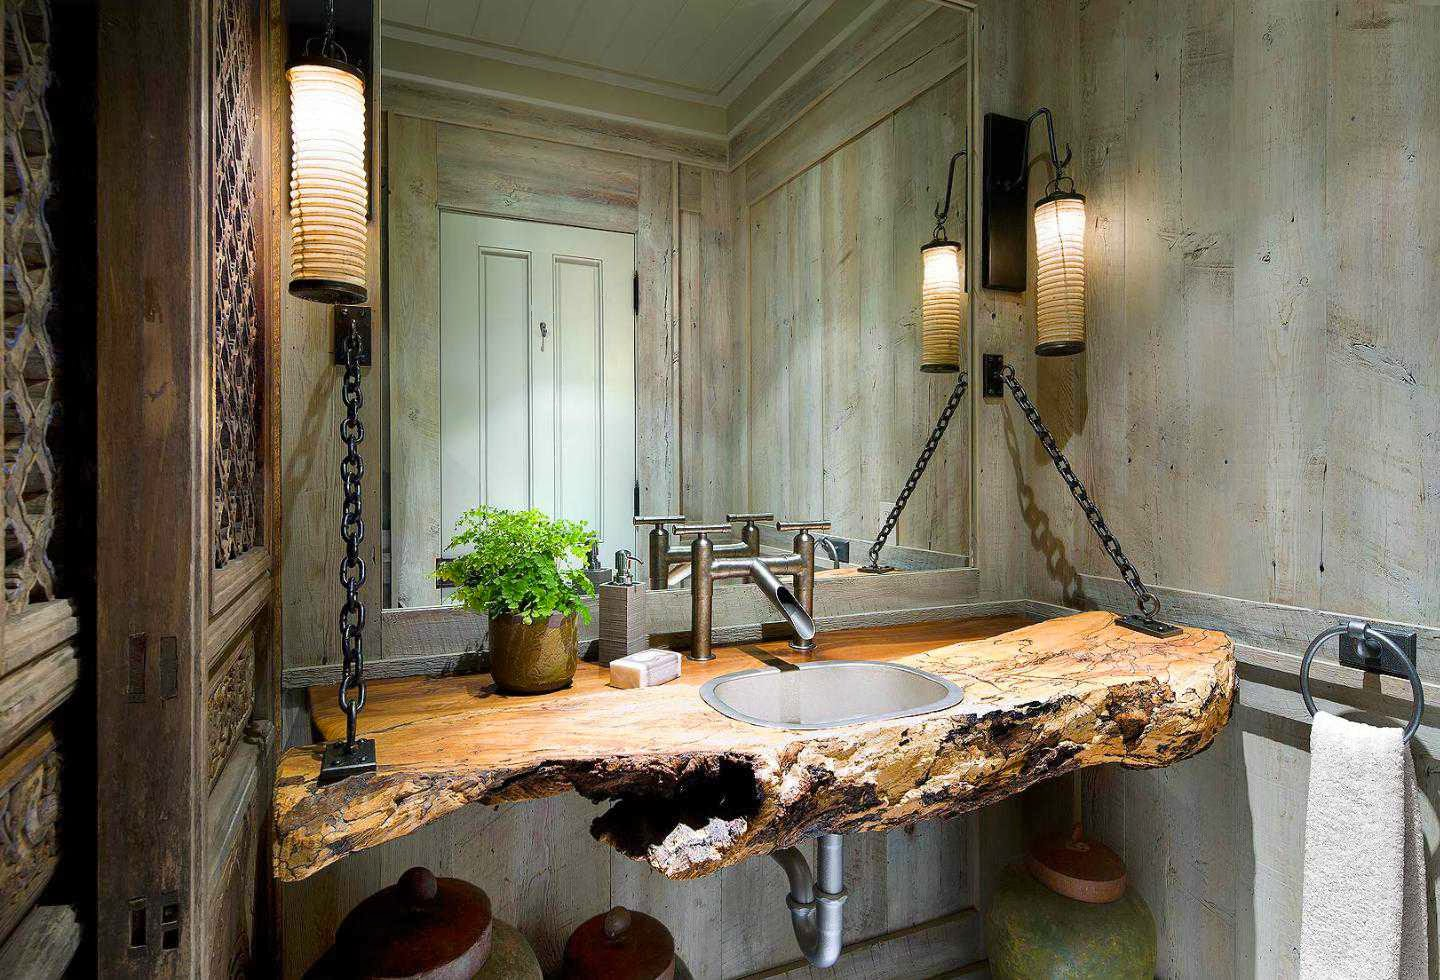 Wood Bathroom Countertops with Sinks